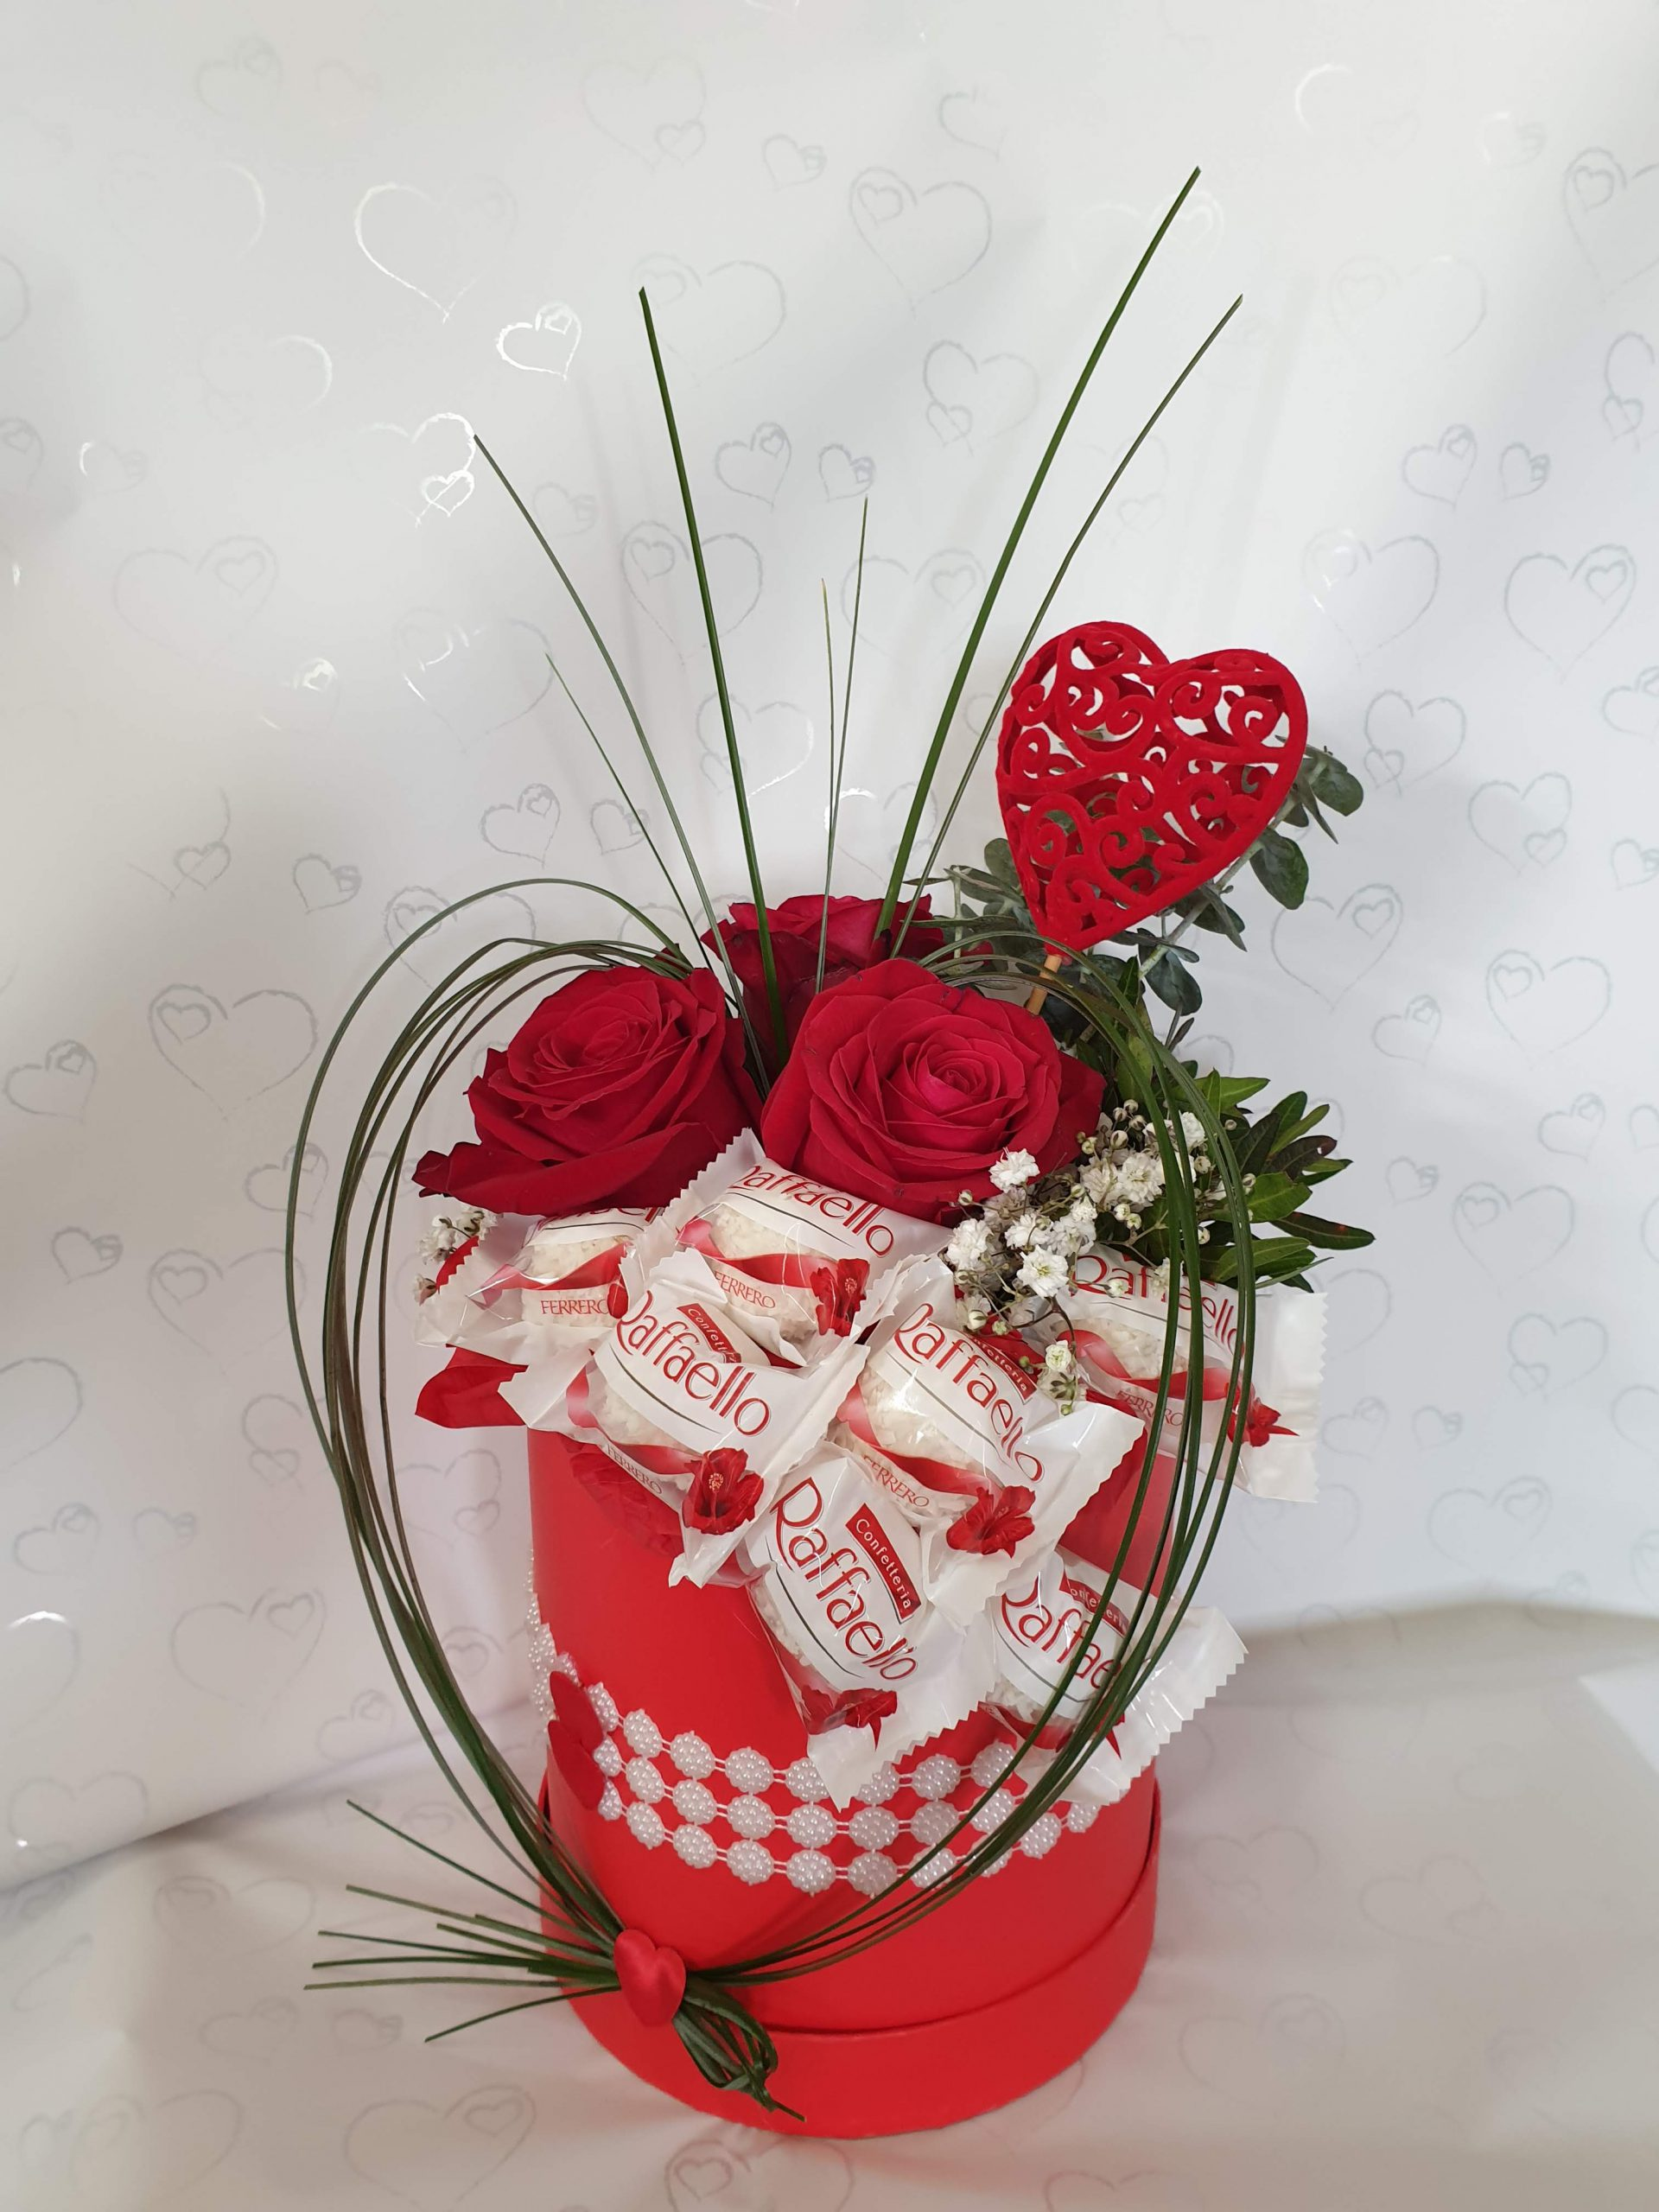 Raffaello flower box